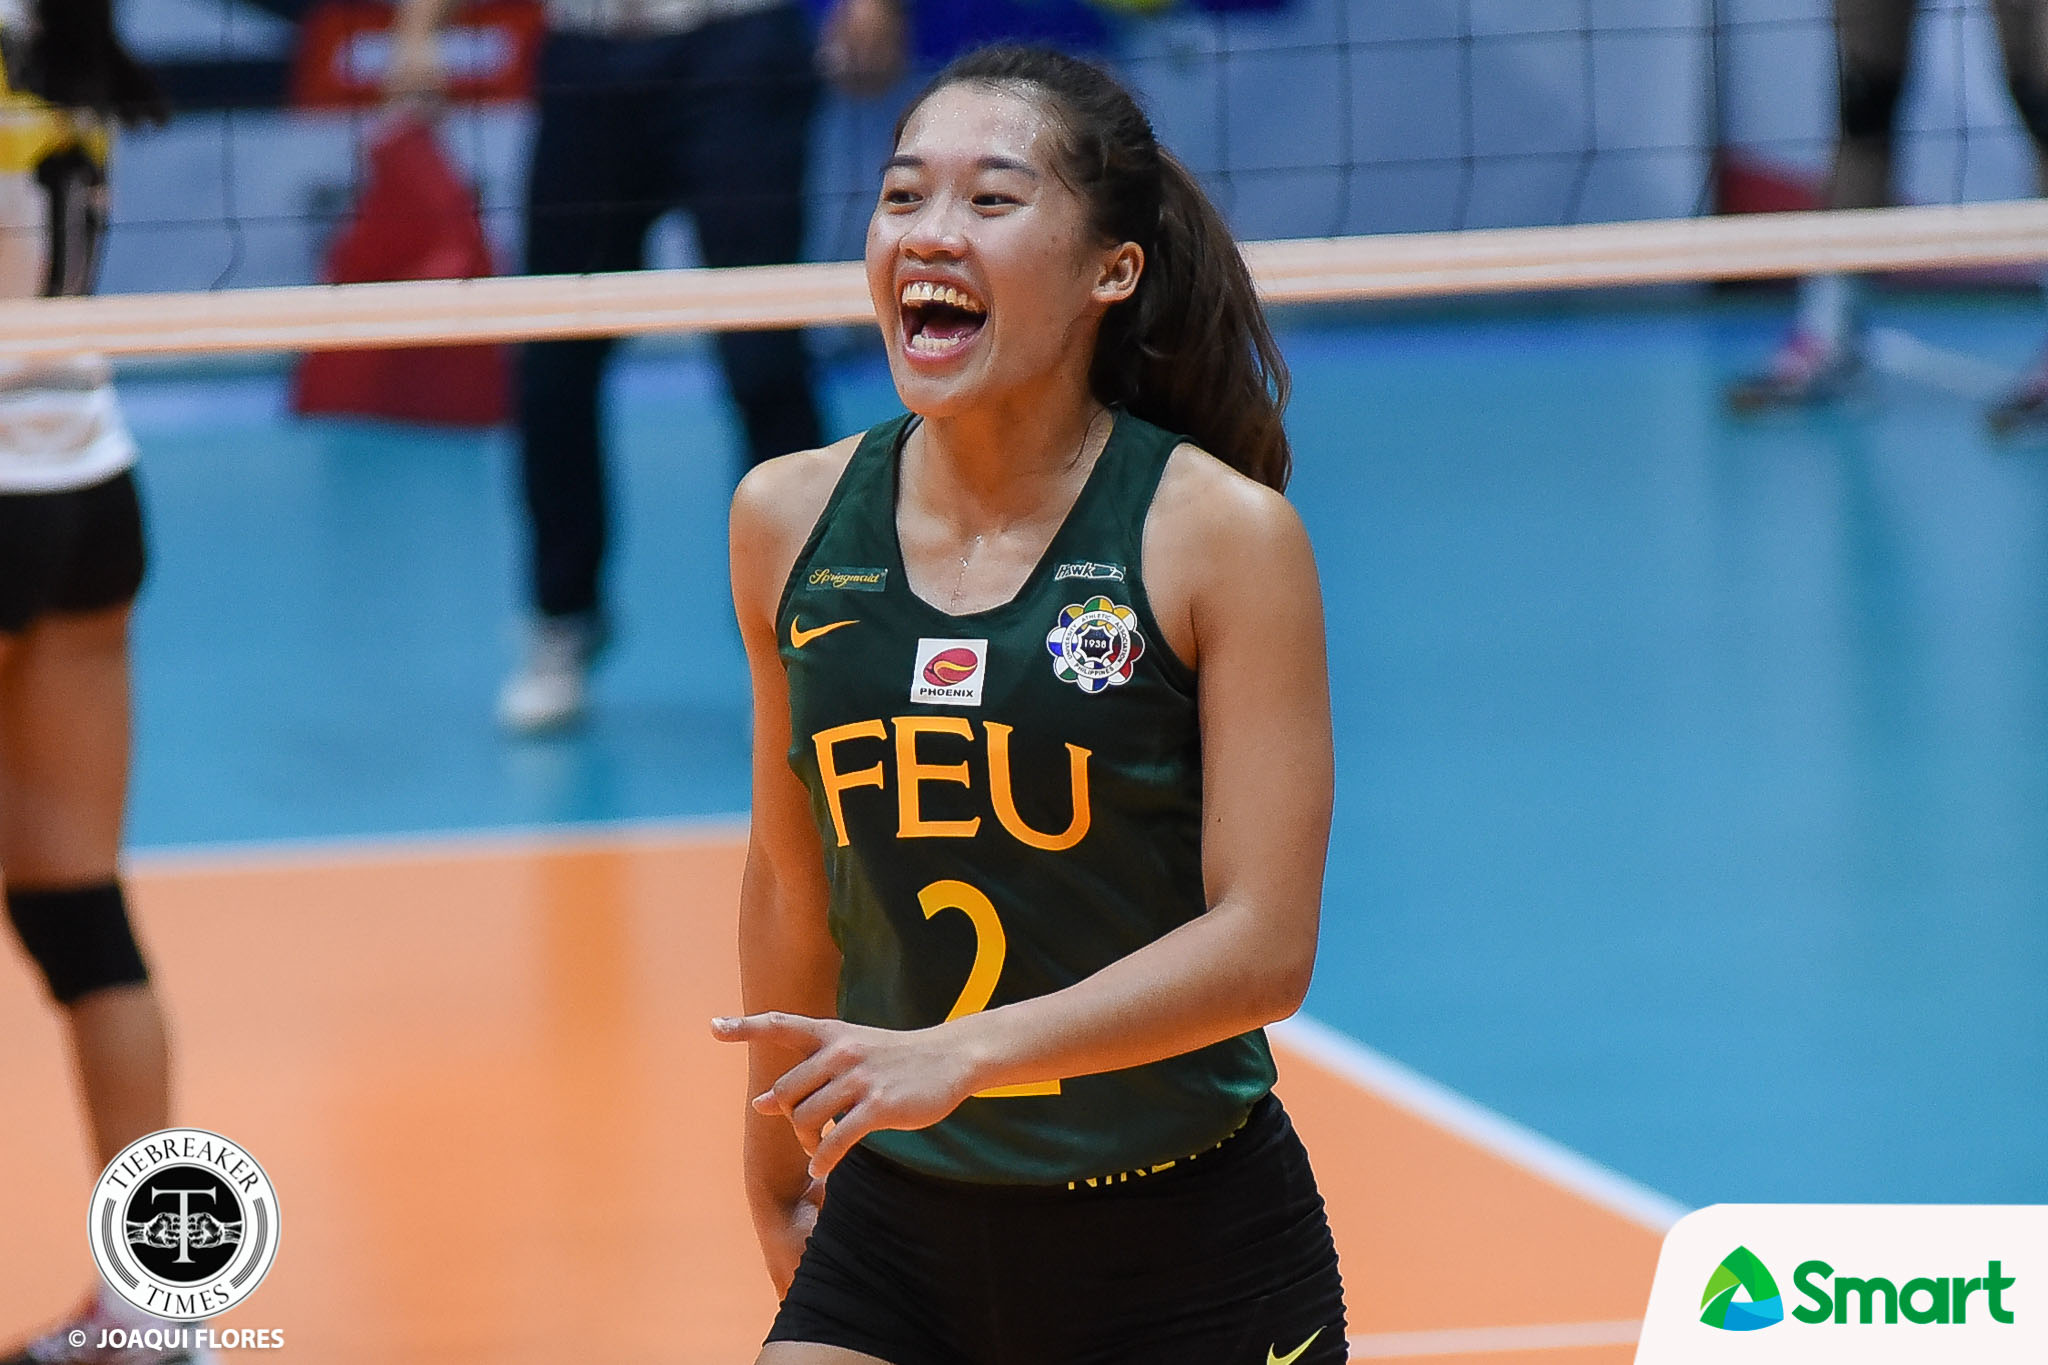 Tiebreaker Times SMART Sports Player of the Week Bernadeth Pons continues to embrace the pressure FEU News UAAP Volleyball  UAAP Season 80 Women's Volleyball UAAP Season 80 UAAP Player of the Week FEU Women's Volleyball Bernadeth Pons